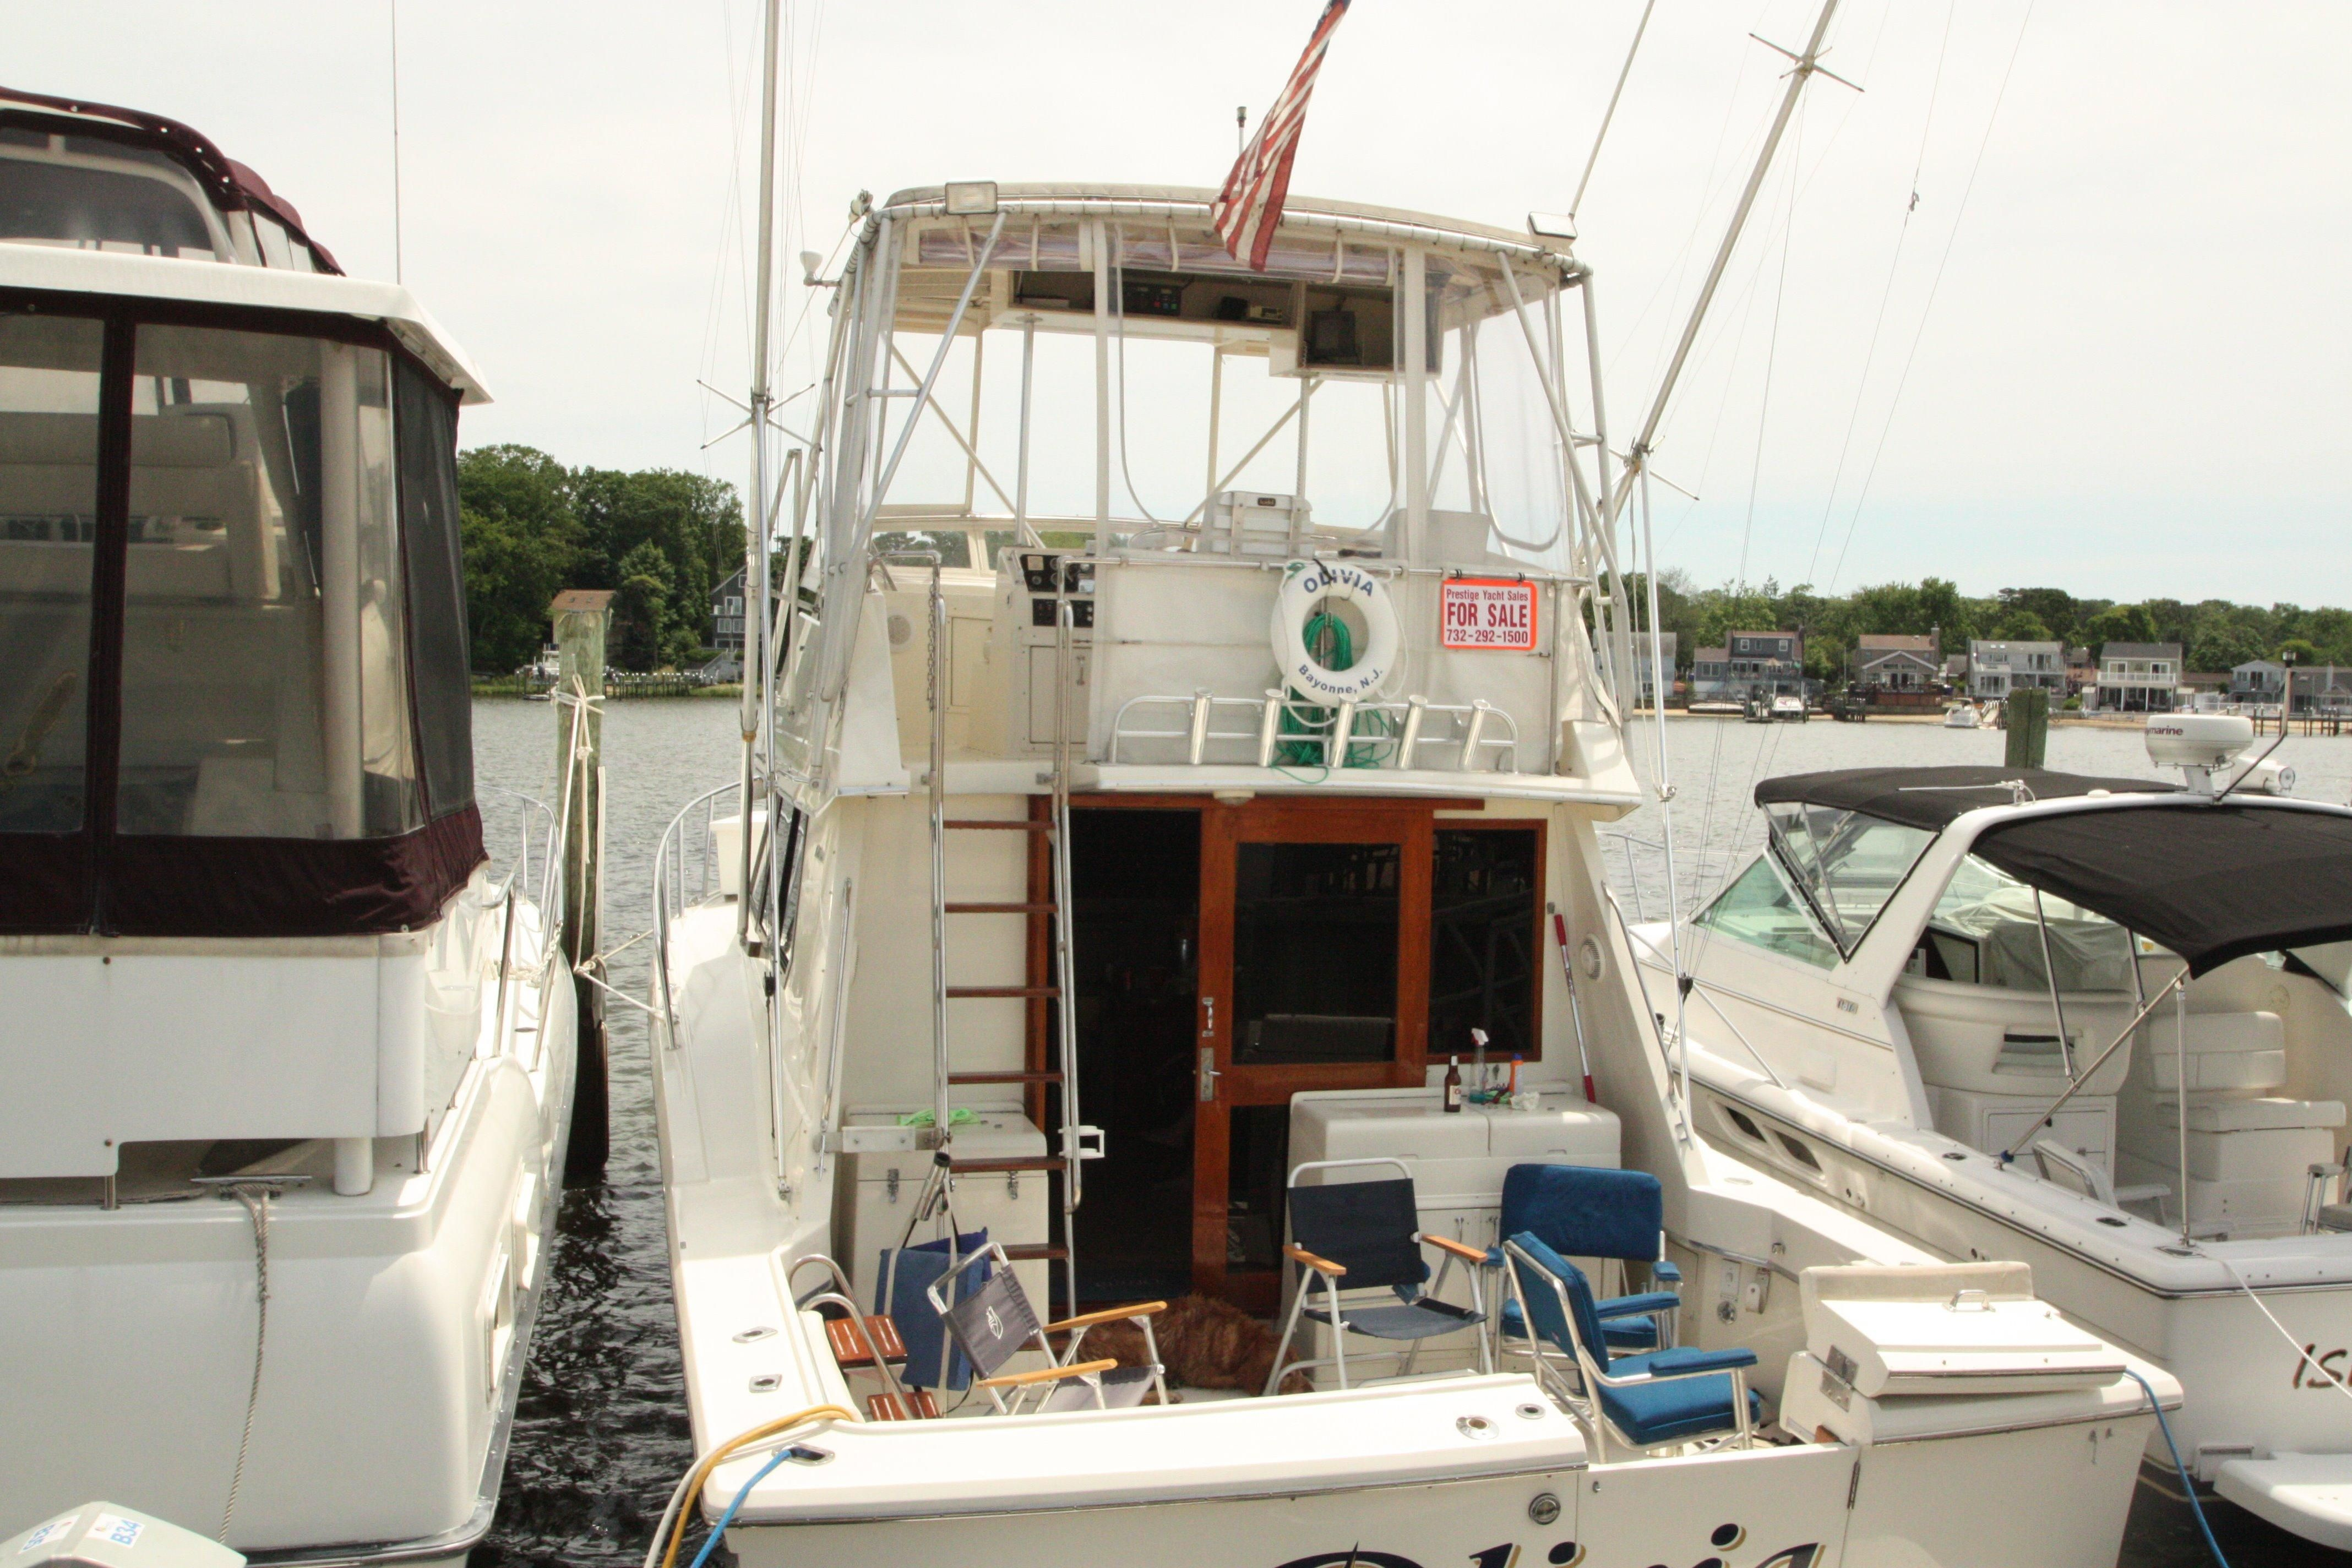 1987 Hatteras 36 Sport Fisherman Power New And Used Boats For Sale Marine Ac Dock Wiring Panel